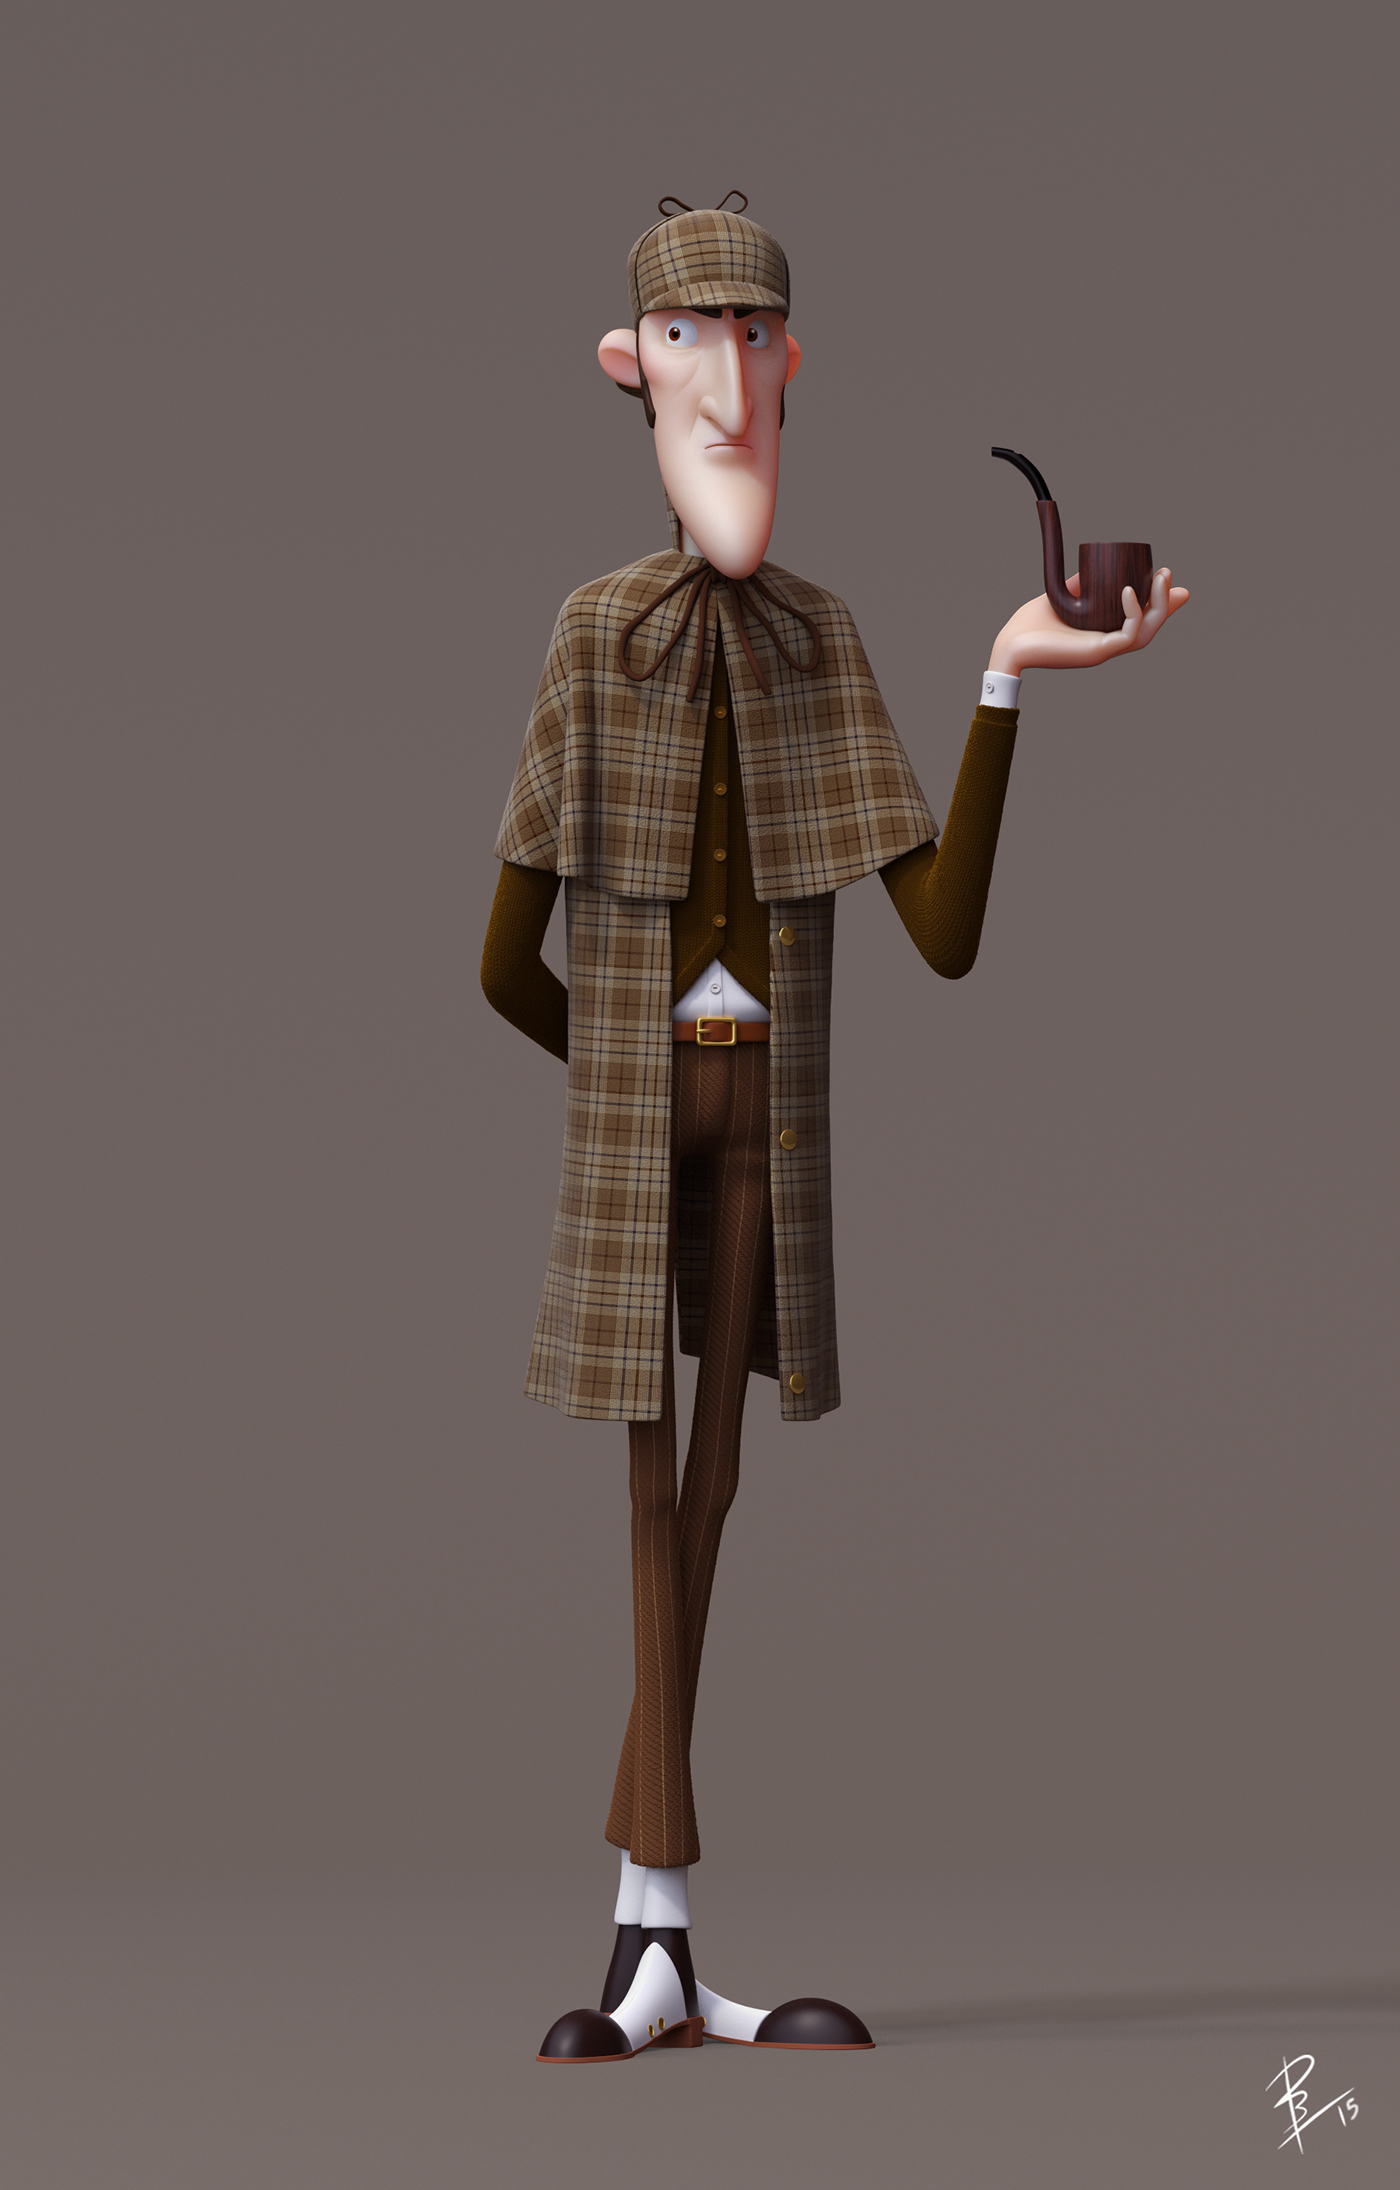 3d Character Design Competition : Sherlock holmes on behance